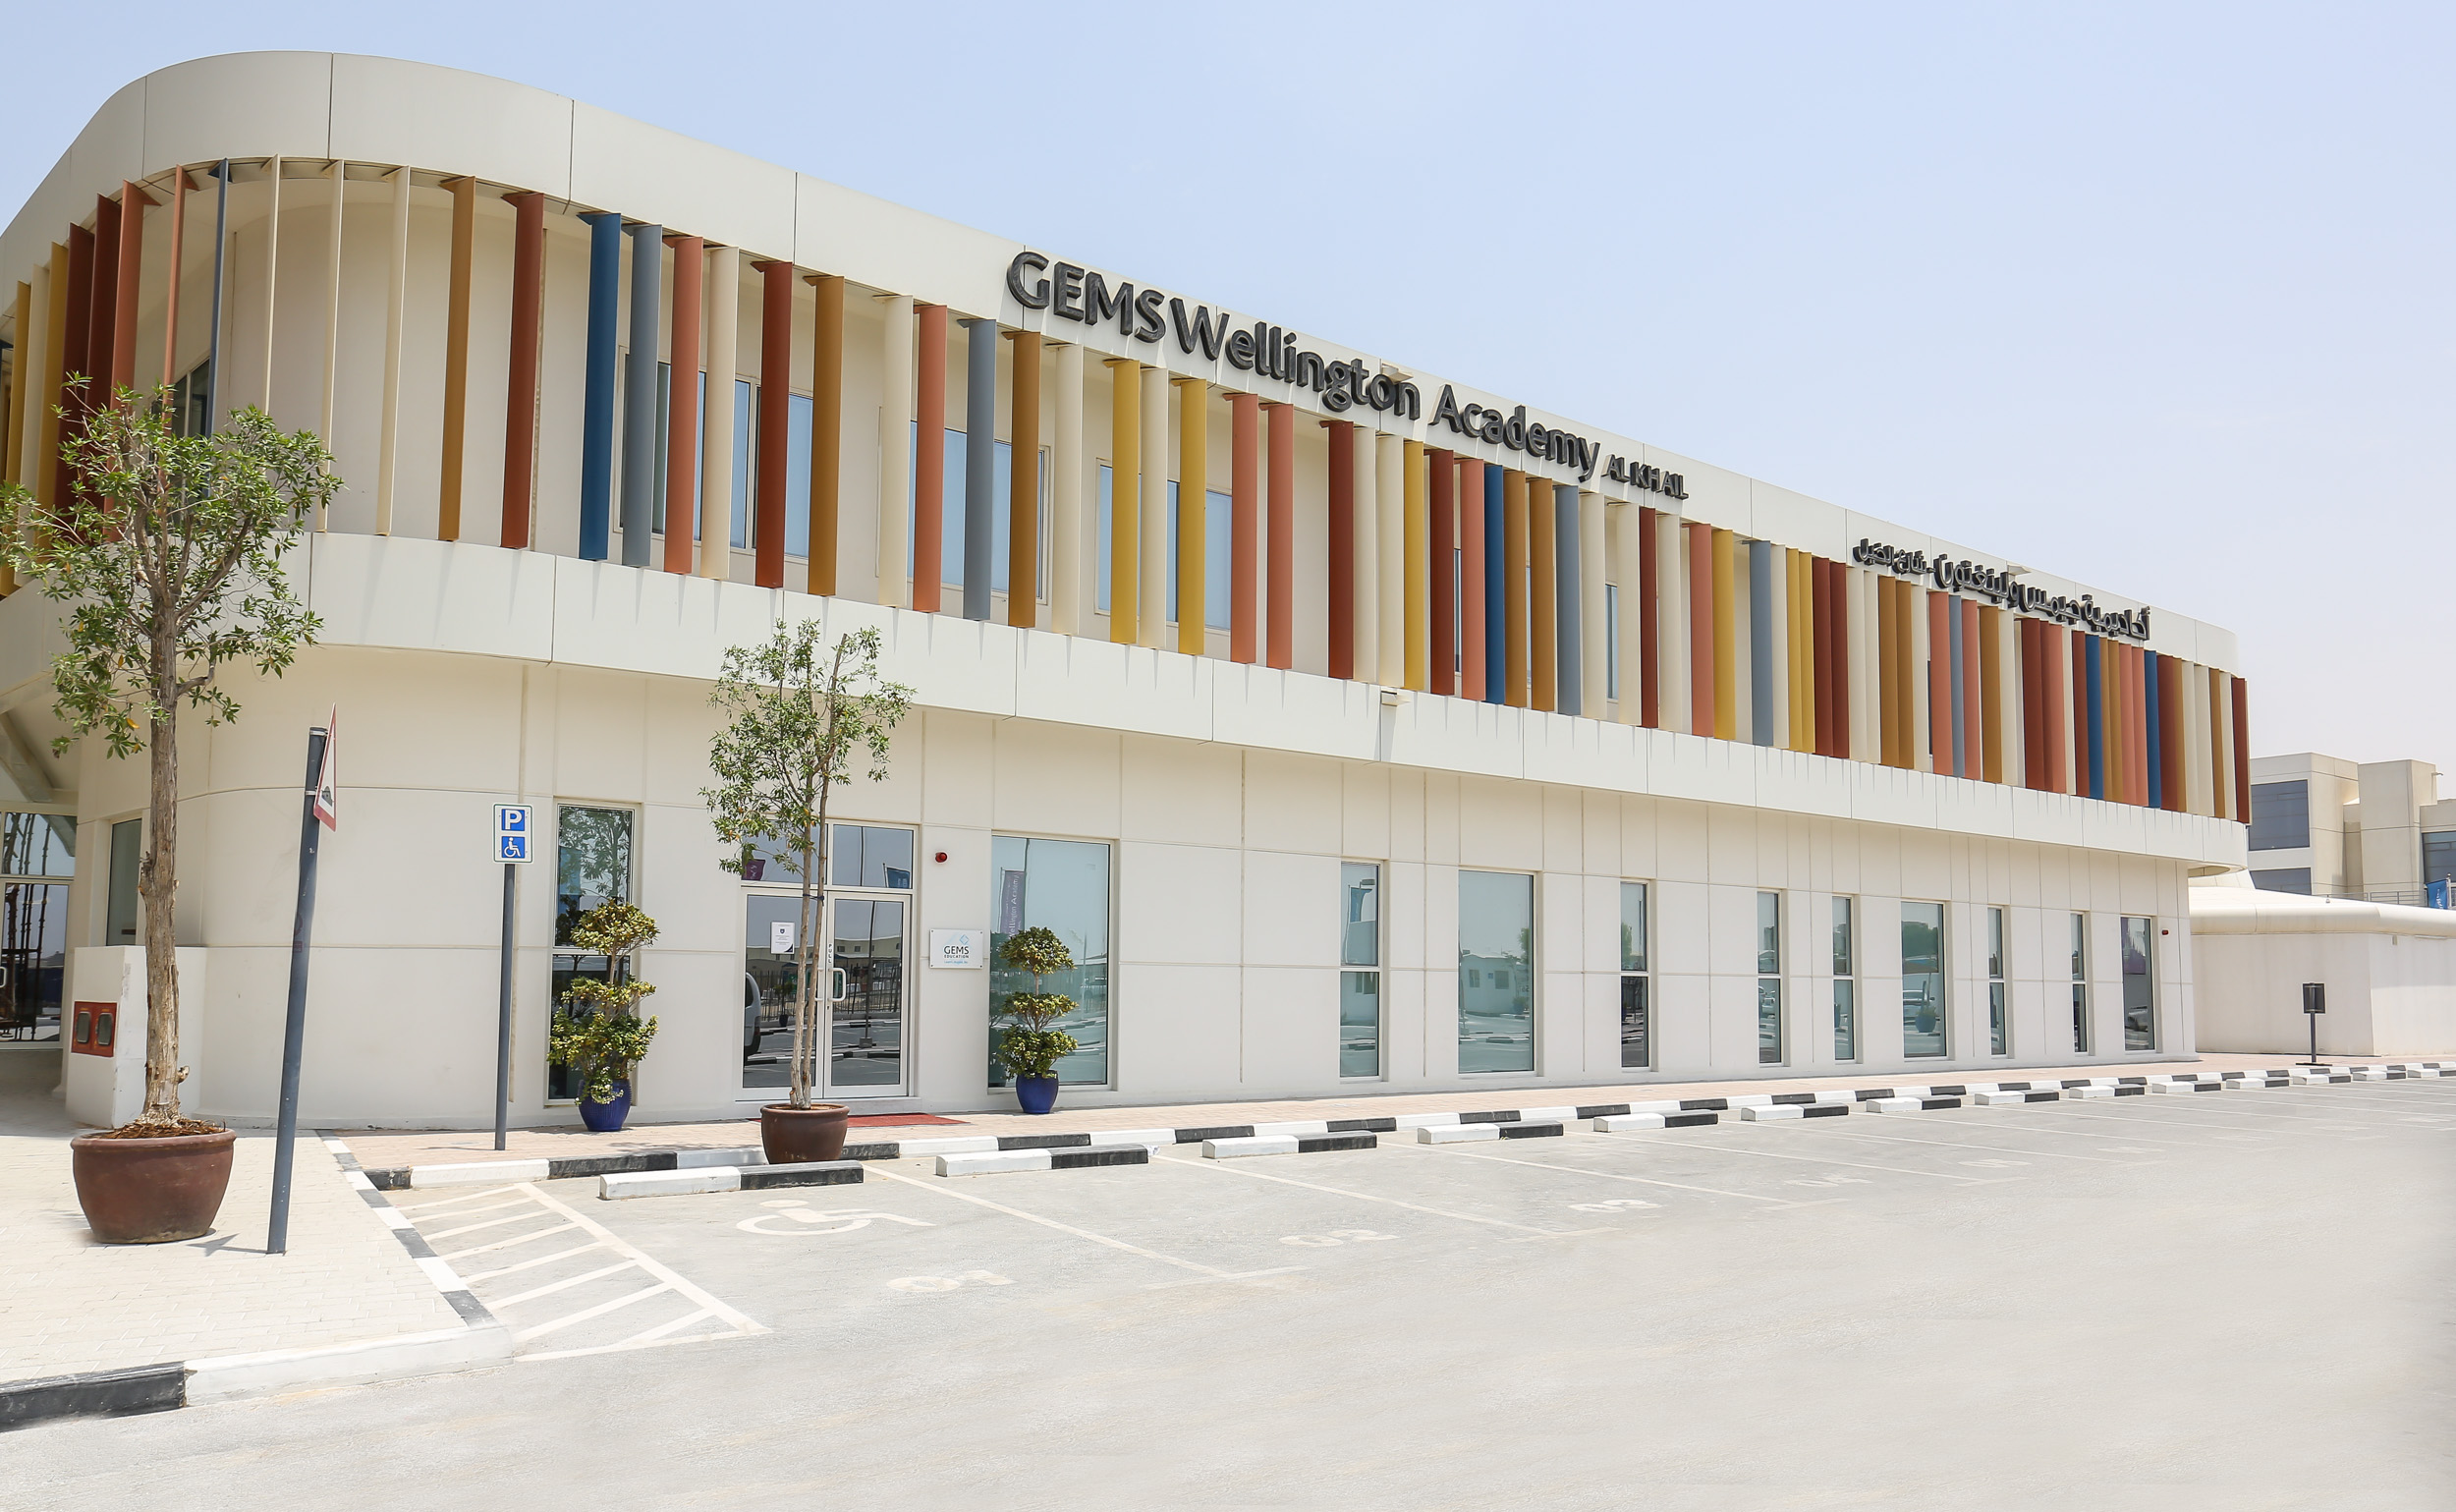 International_Schools_in_Dubai_I_Gems_Wellington_Academy_Al_Khail